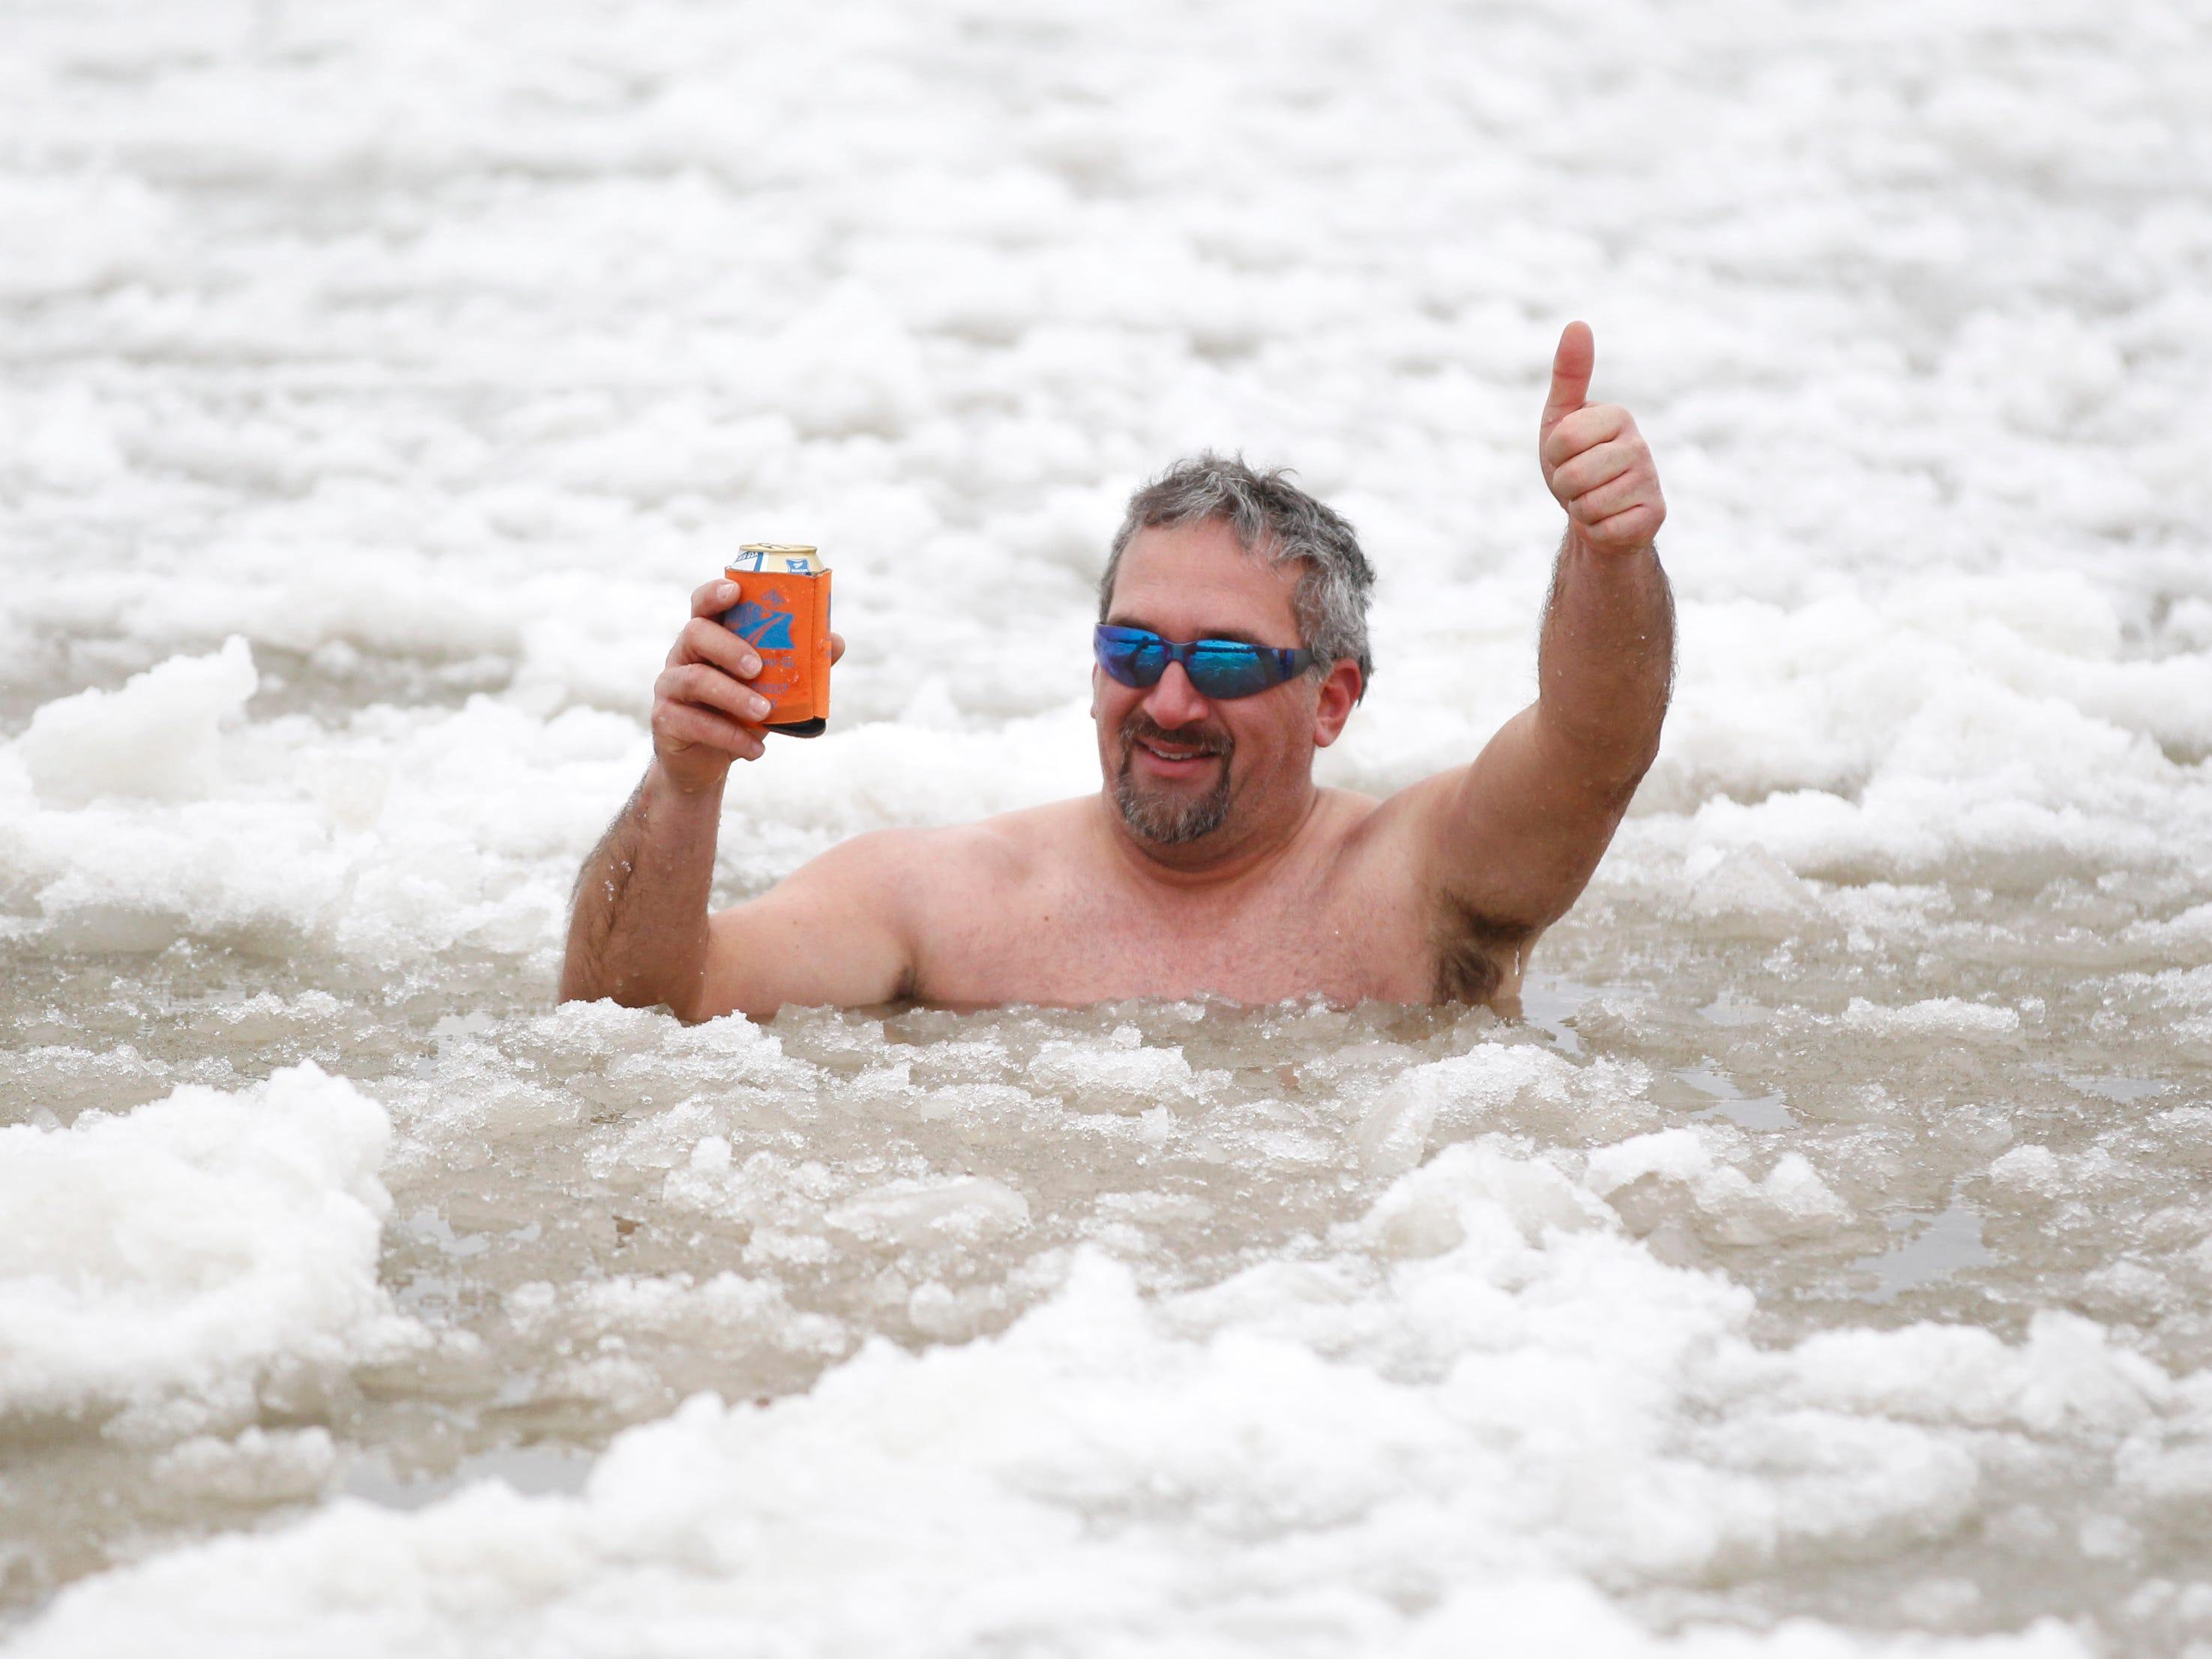 Jeff Kopp of Waukesha gives a thumbs up while lounging with his adult beverage surrounded by ice-filled water at Bradford Beach, after the annual Polar Bear Plunge on Jan. 1, 2014.